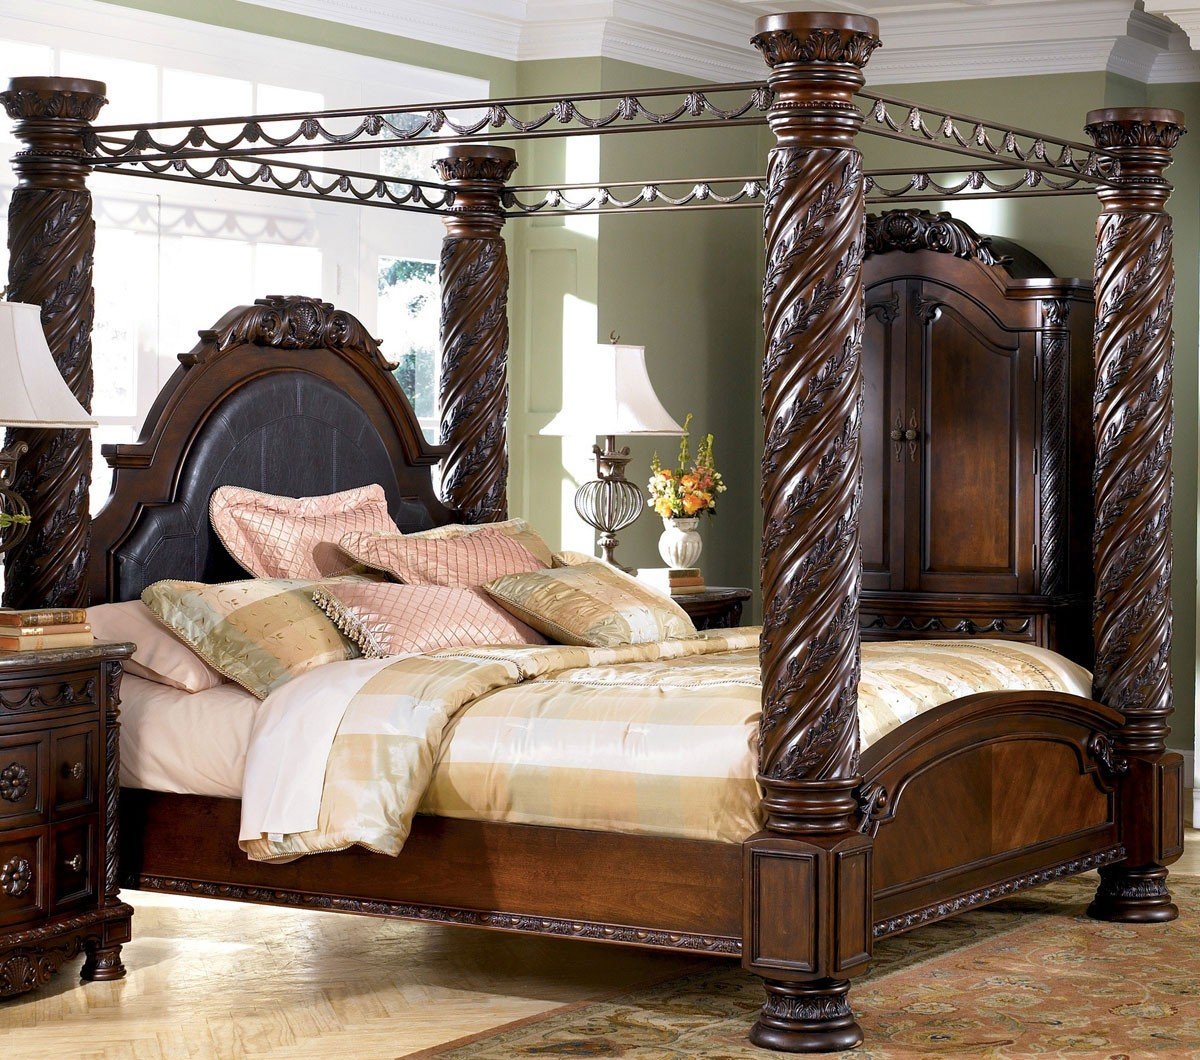 Beautiful Furniture For Decorating Bedroom Using Unique Black Canopy and Dresser